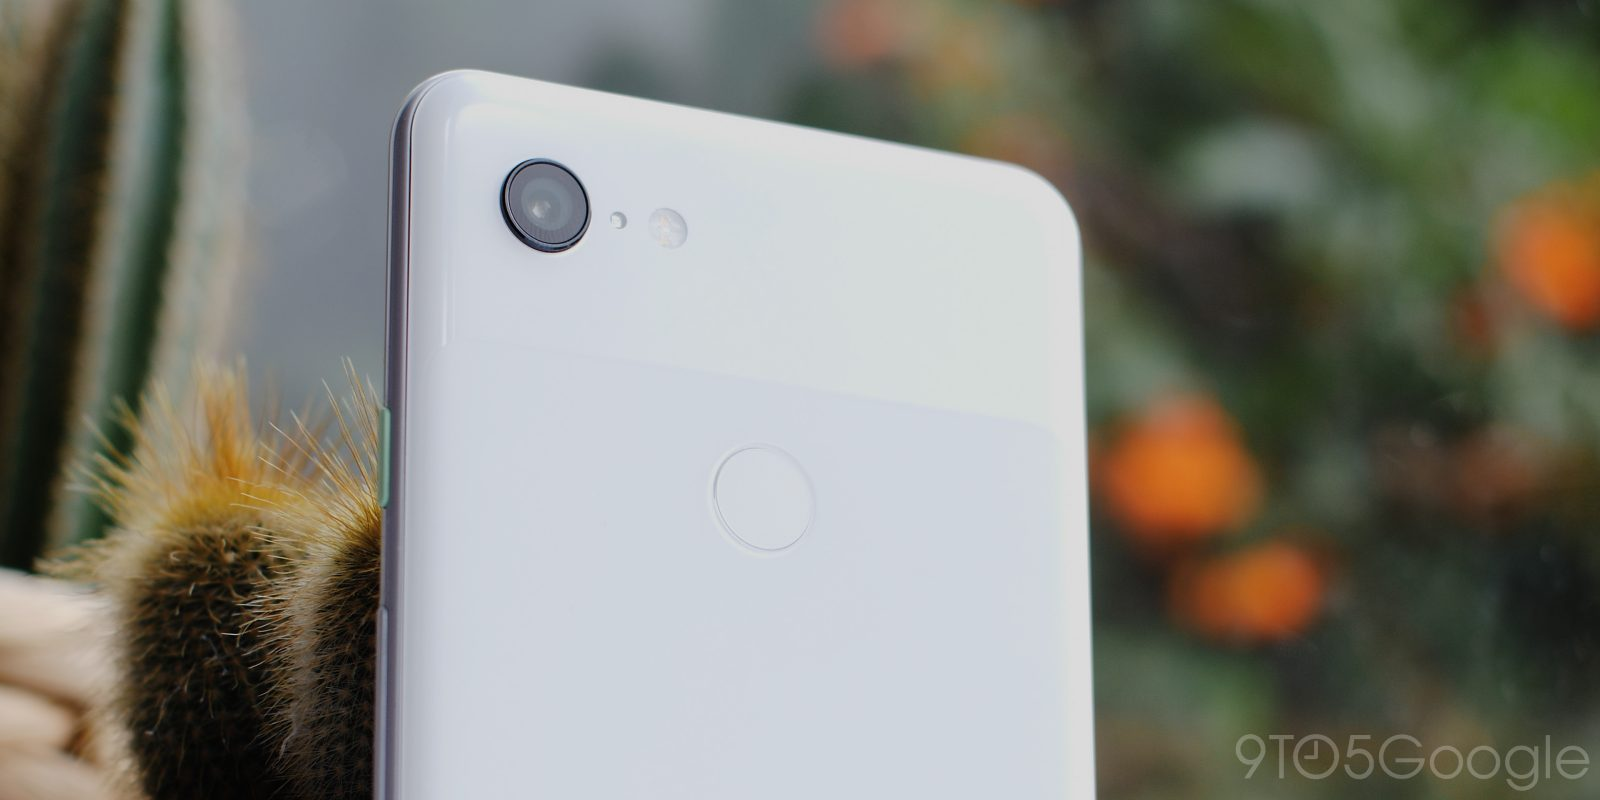 This week's top stories: Pixel 3 re-reviewed, system updates & Material Theme in Play Store, more - 9to5Google 1